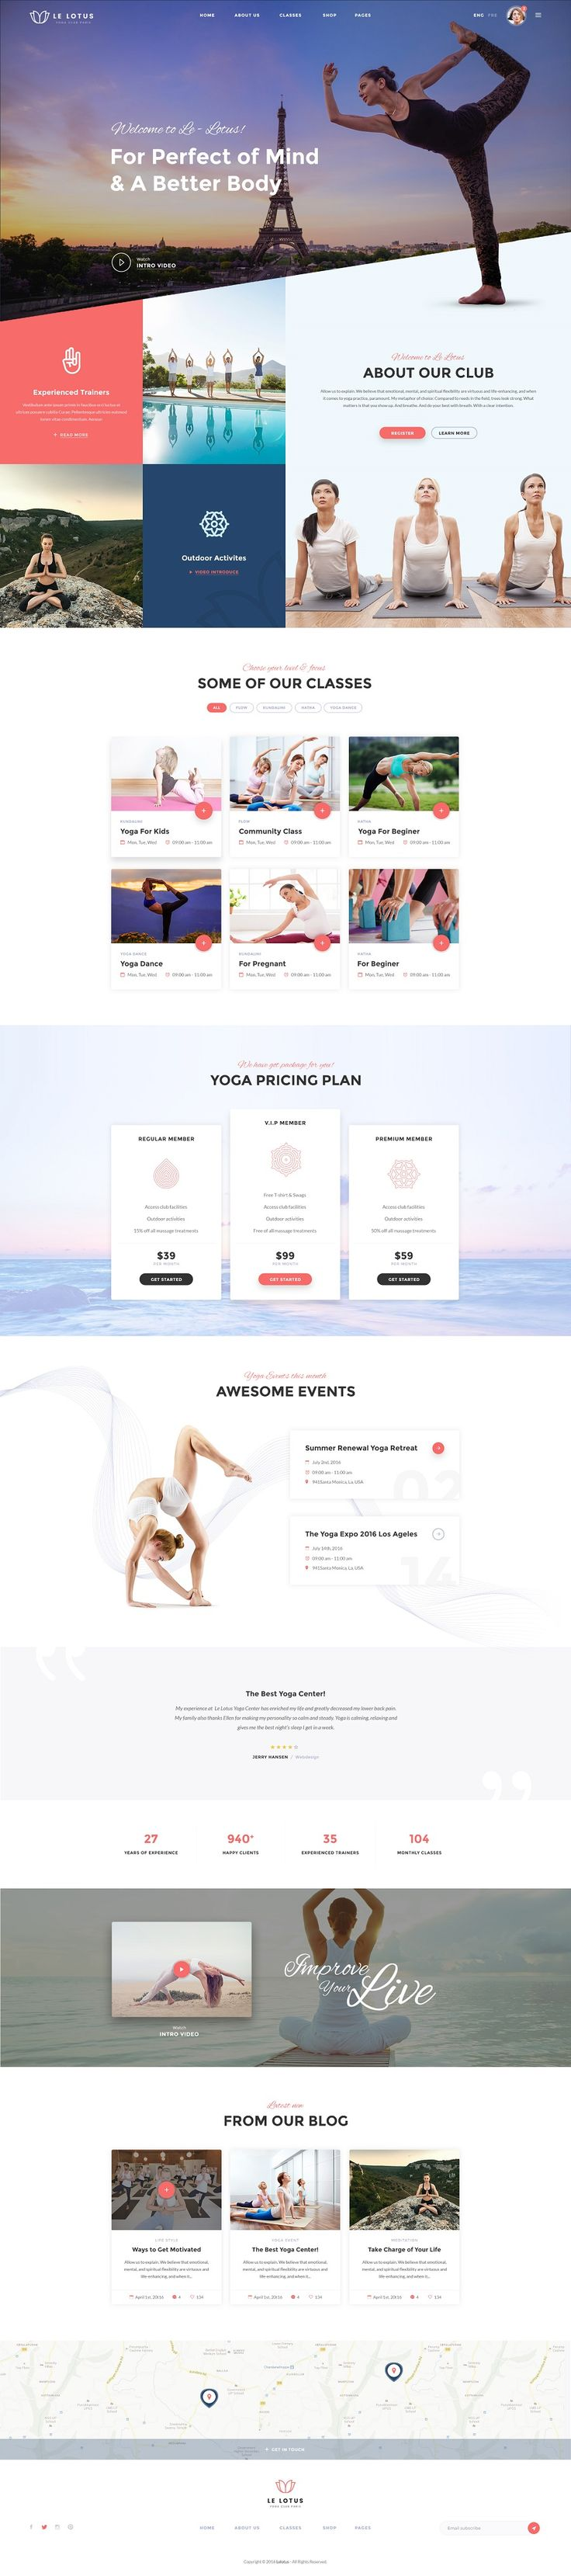 Best 20+ Web design templates ideas on Pinterest